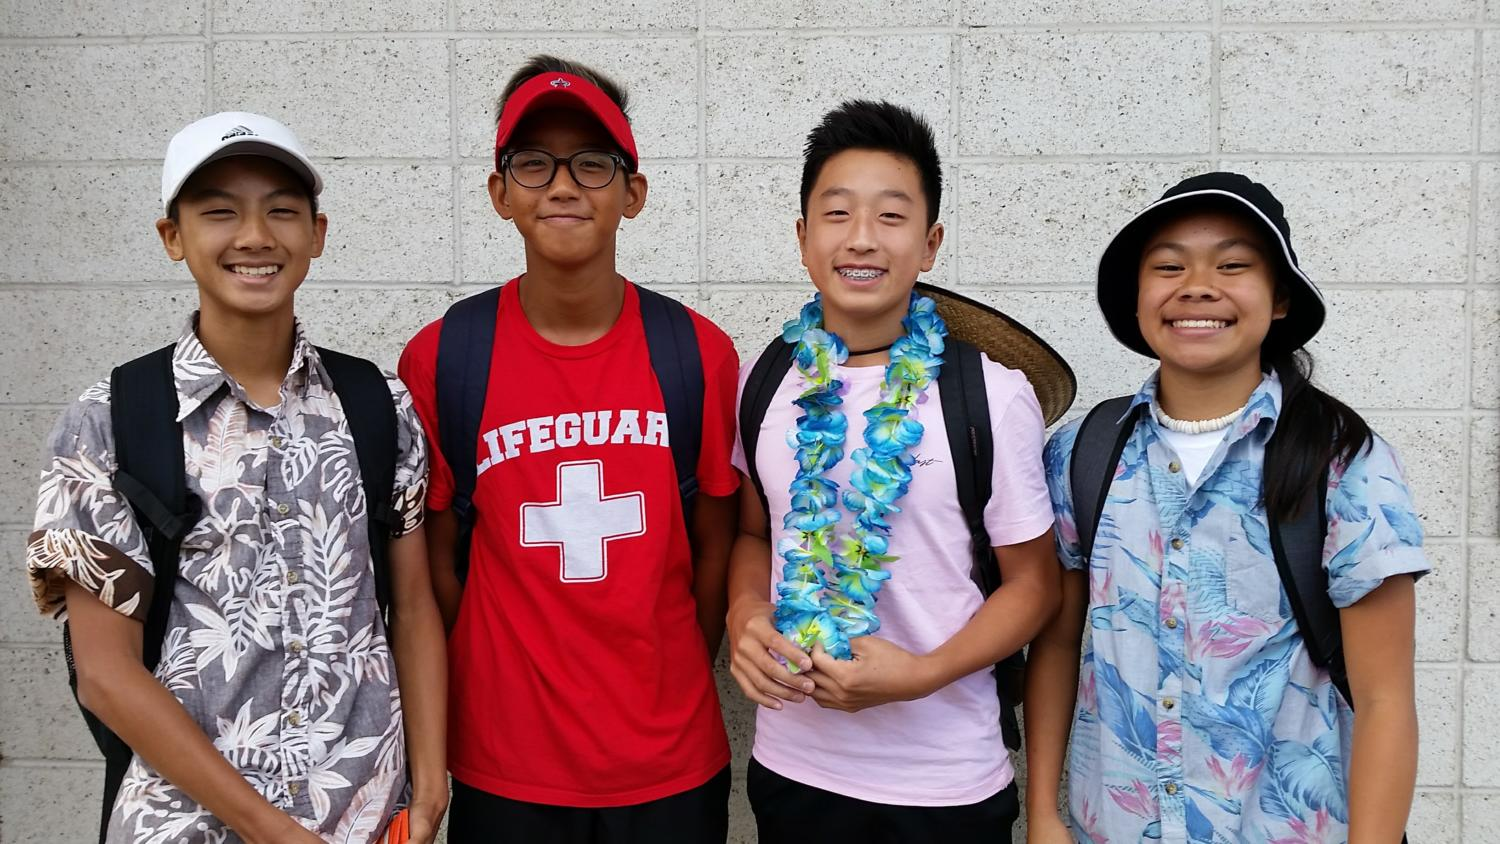 Sugita, Kim, Chung and Tabayoyong sport their tacky-tourist-themed outfits on the first day of Spirit Week.